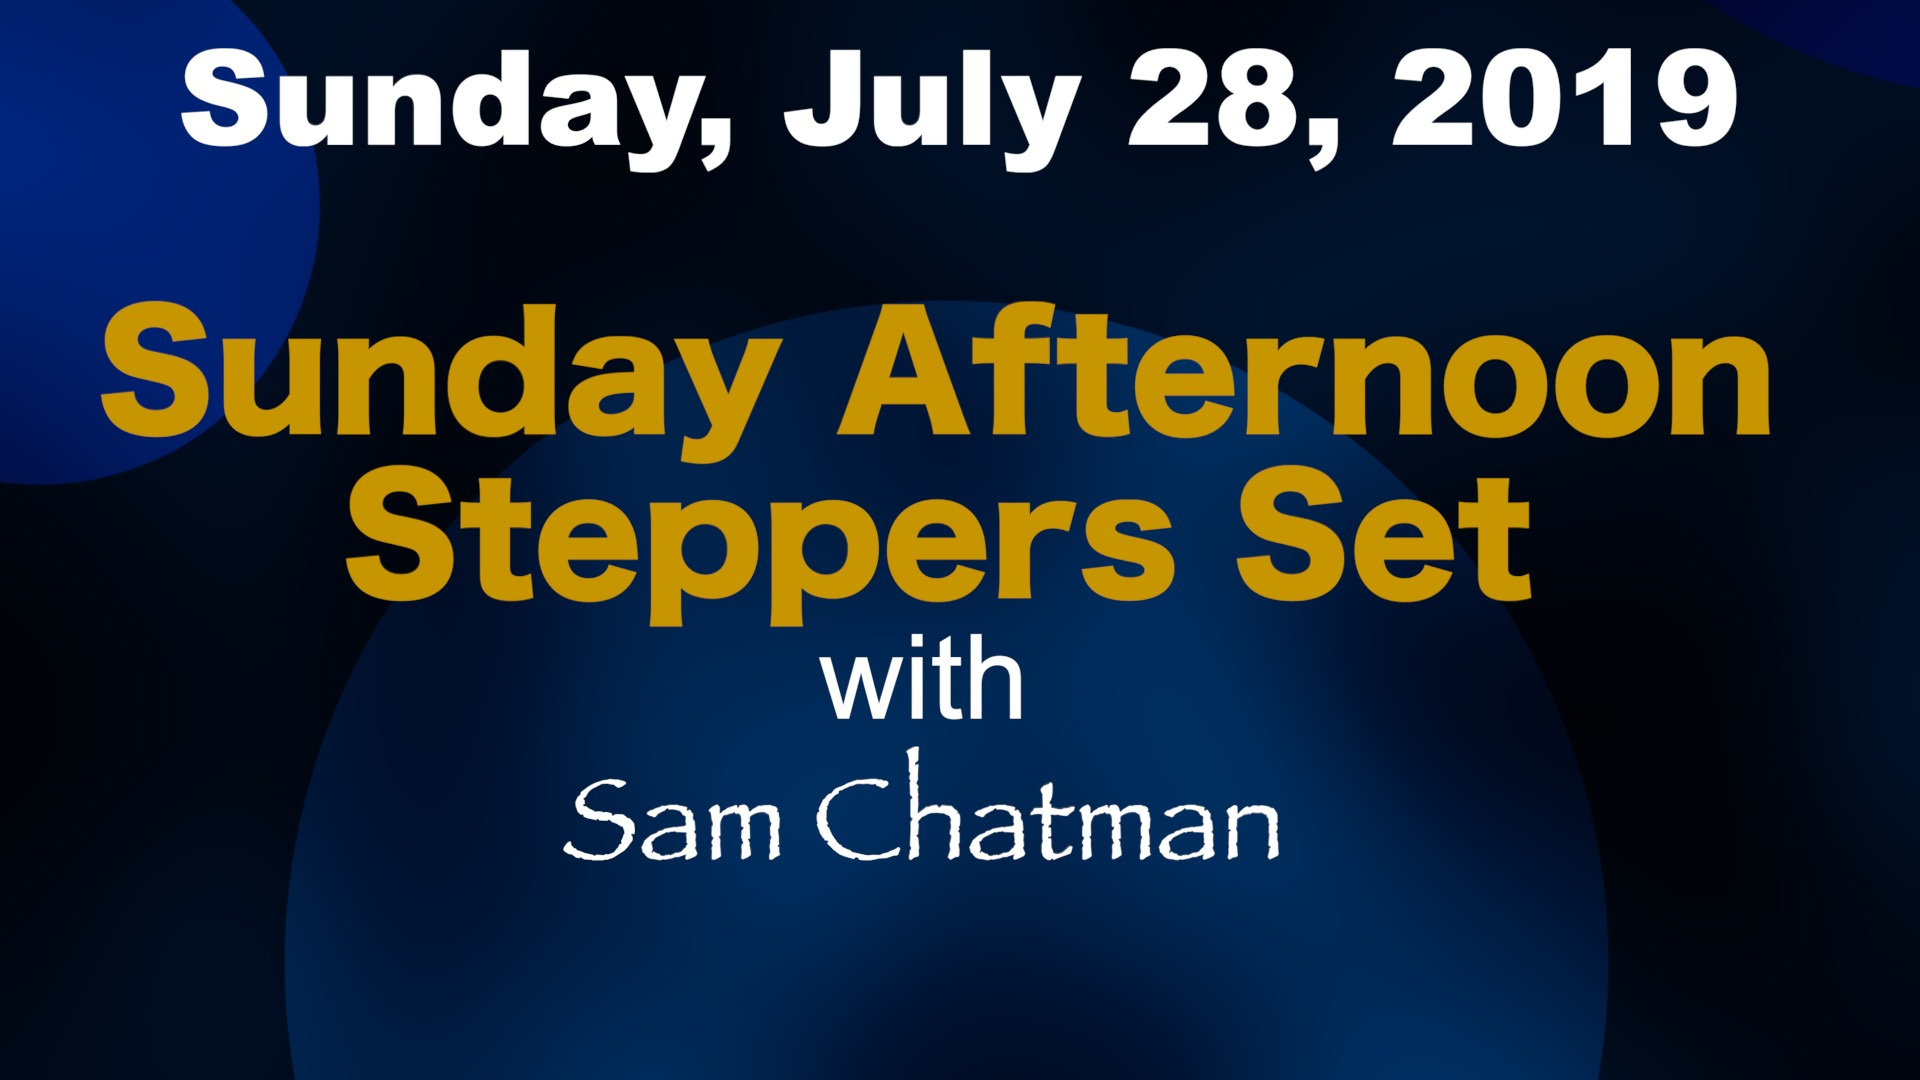 Image for POSTPONED: Steppers Event